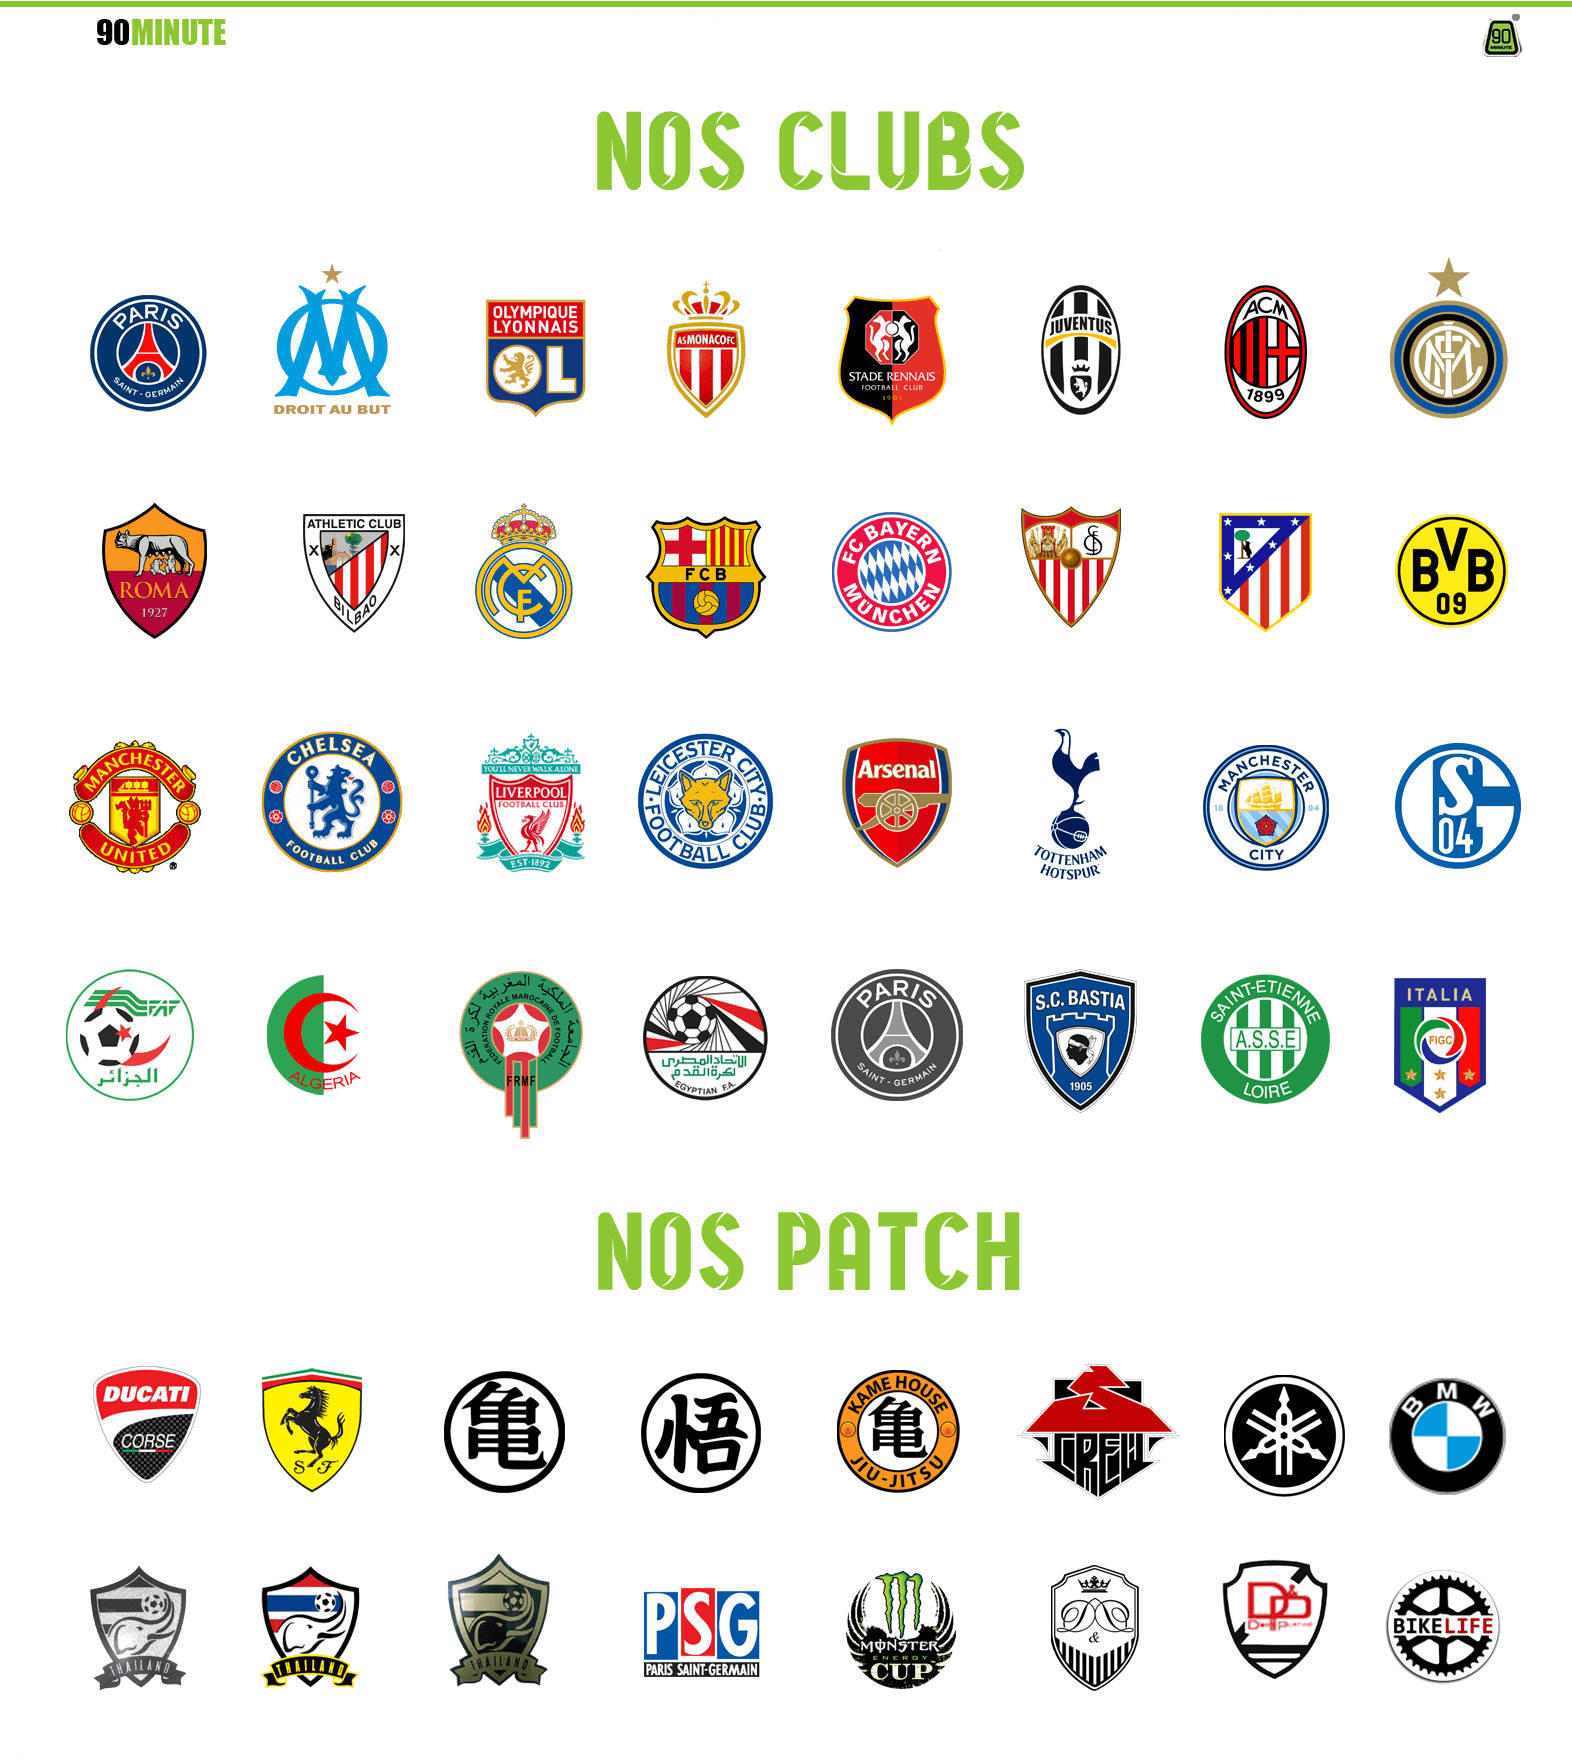 NOS-PATCHS-90-MINUTE